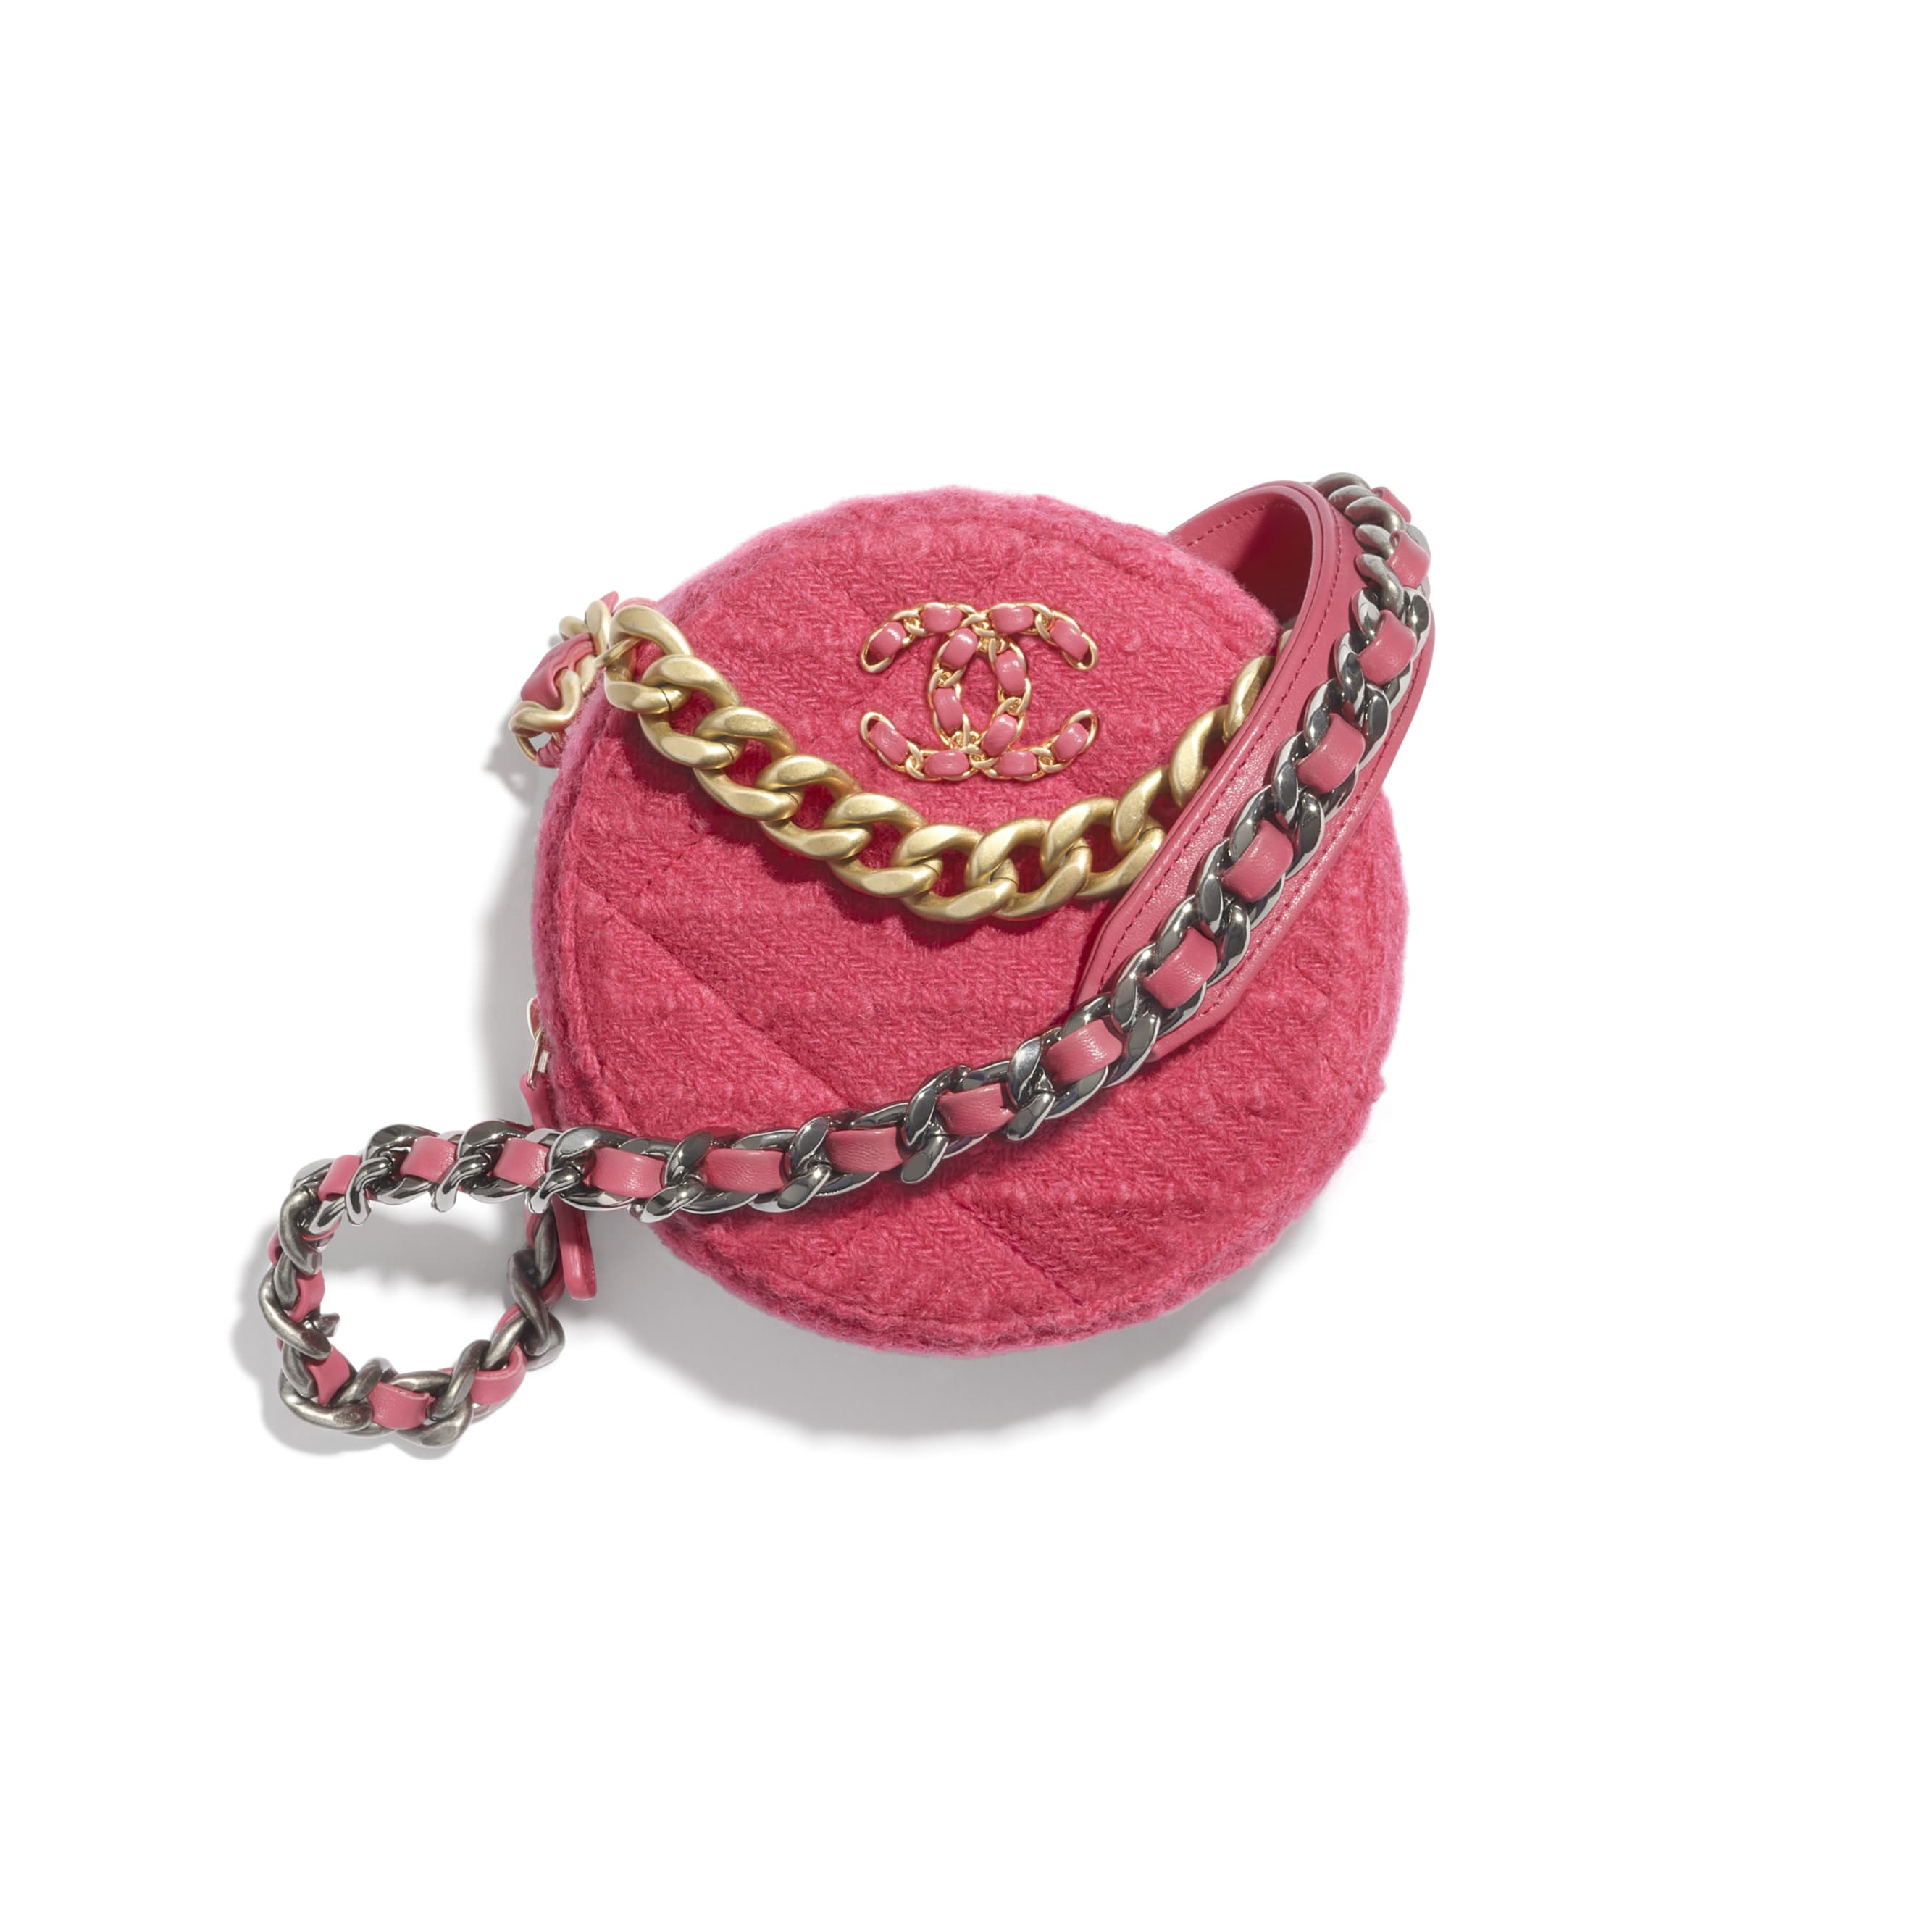 CHANEL 19 Clutch with Chain - Raspberry Pink - Wool Tweed, Gold-Tone, Silver-Tone & Ruthenium-Finish Metal - CHANEL - Default view - see standard sized version